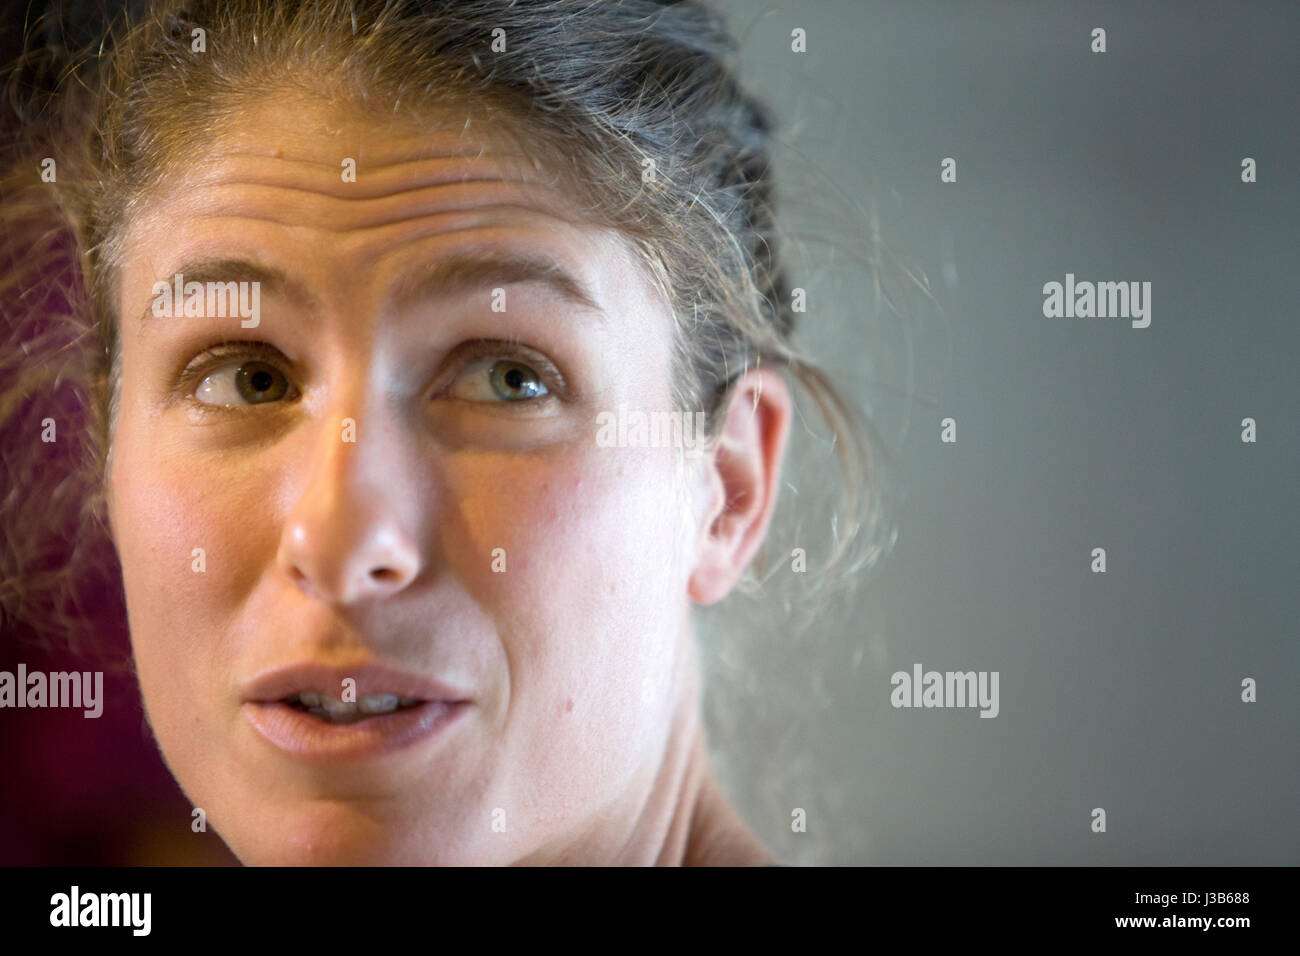 Madrid, Spain. 5th May, 2017. Johanna Konta Cuenta during the draw of the WTA Premiere Mandatory  at the Mutua de - Stock Image